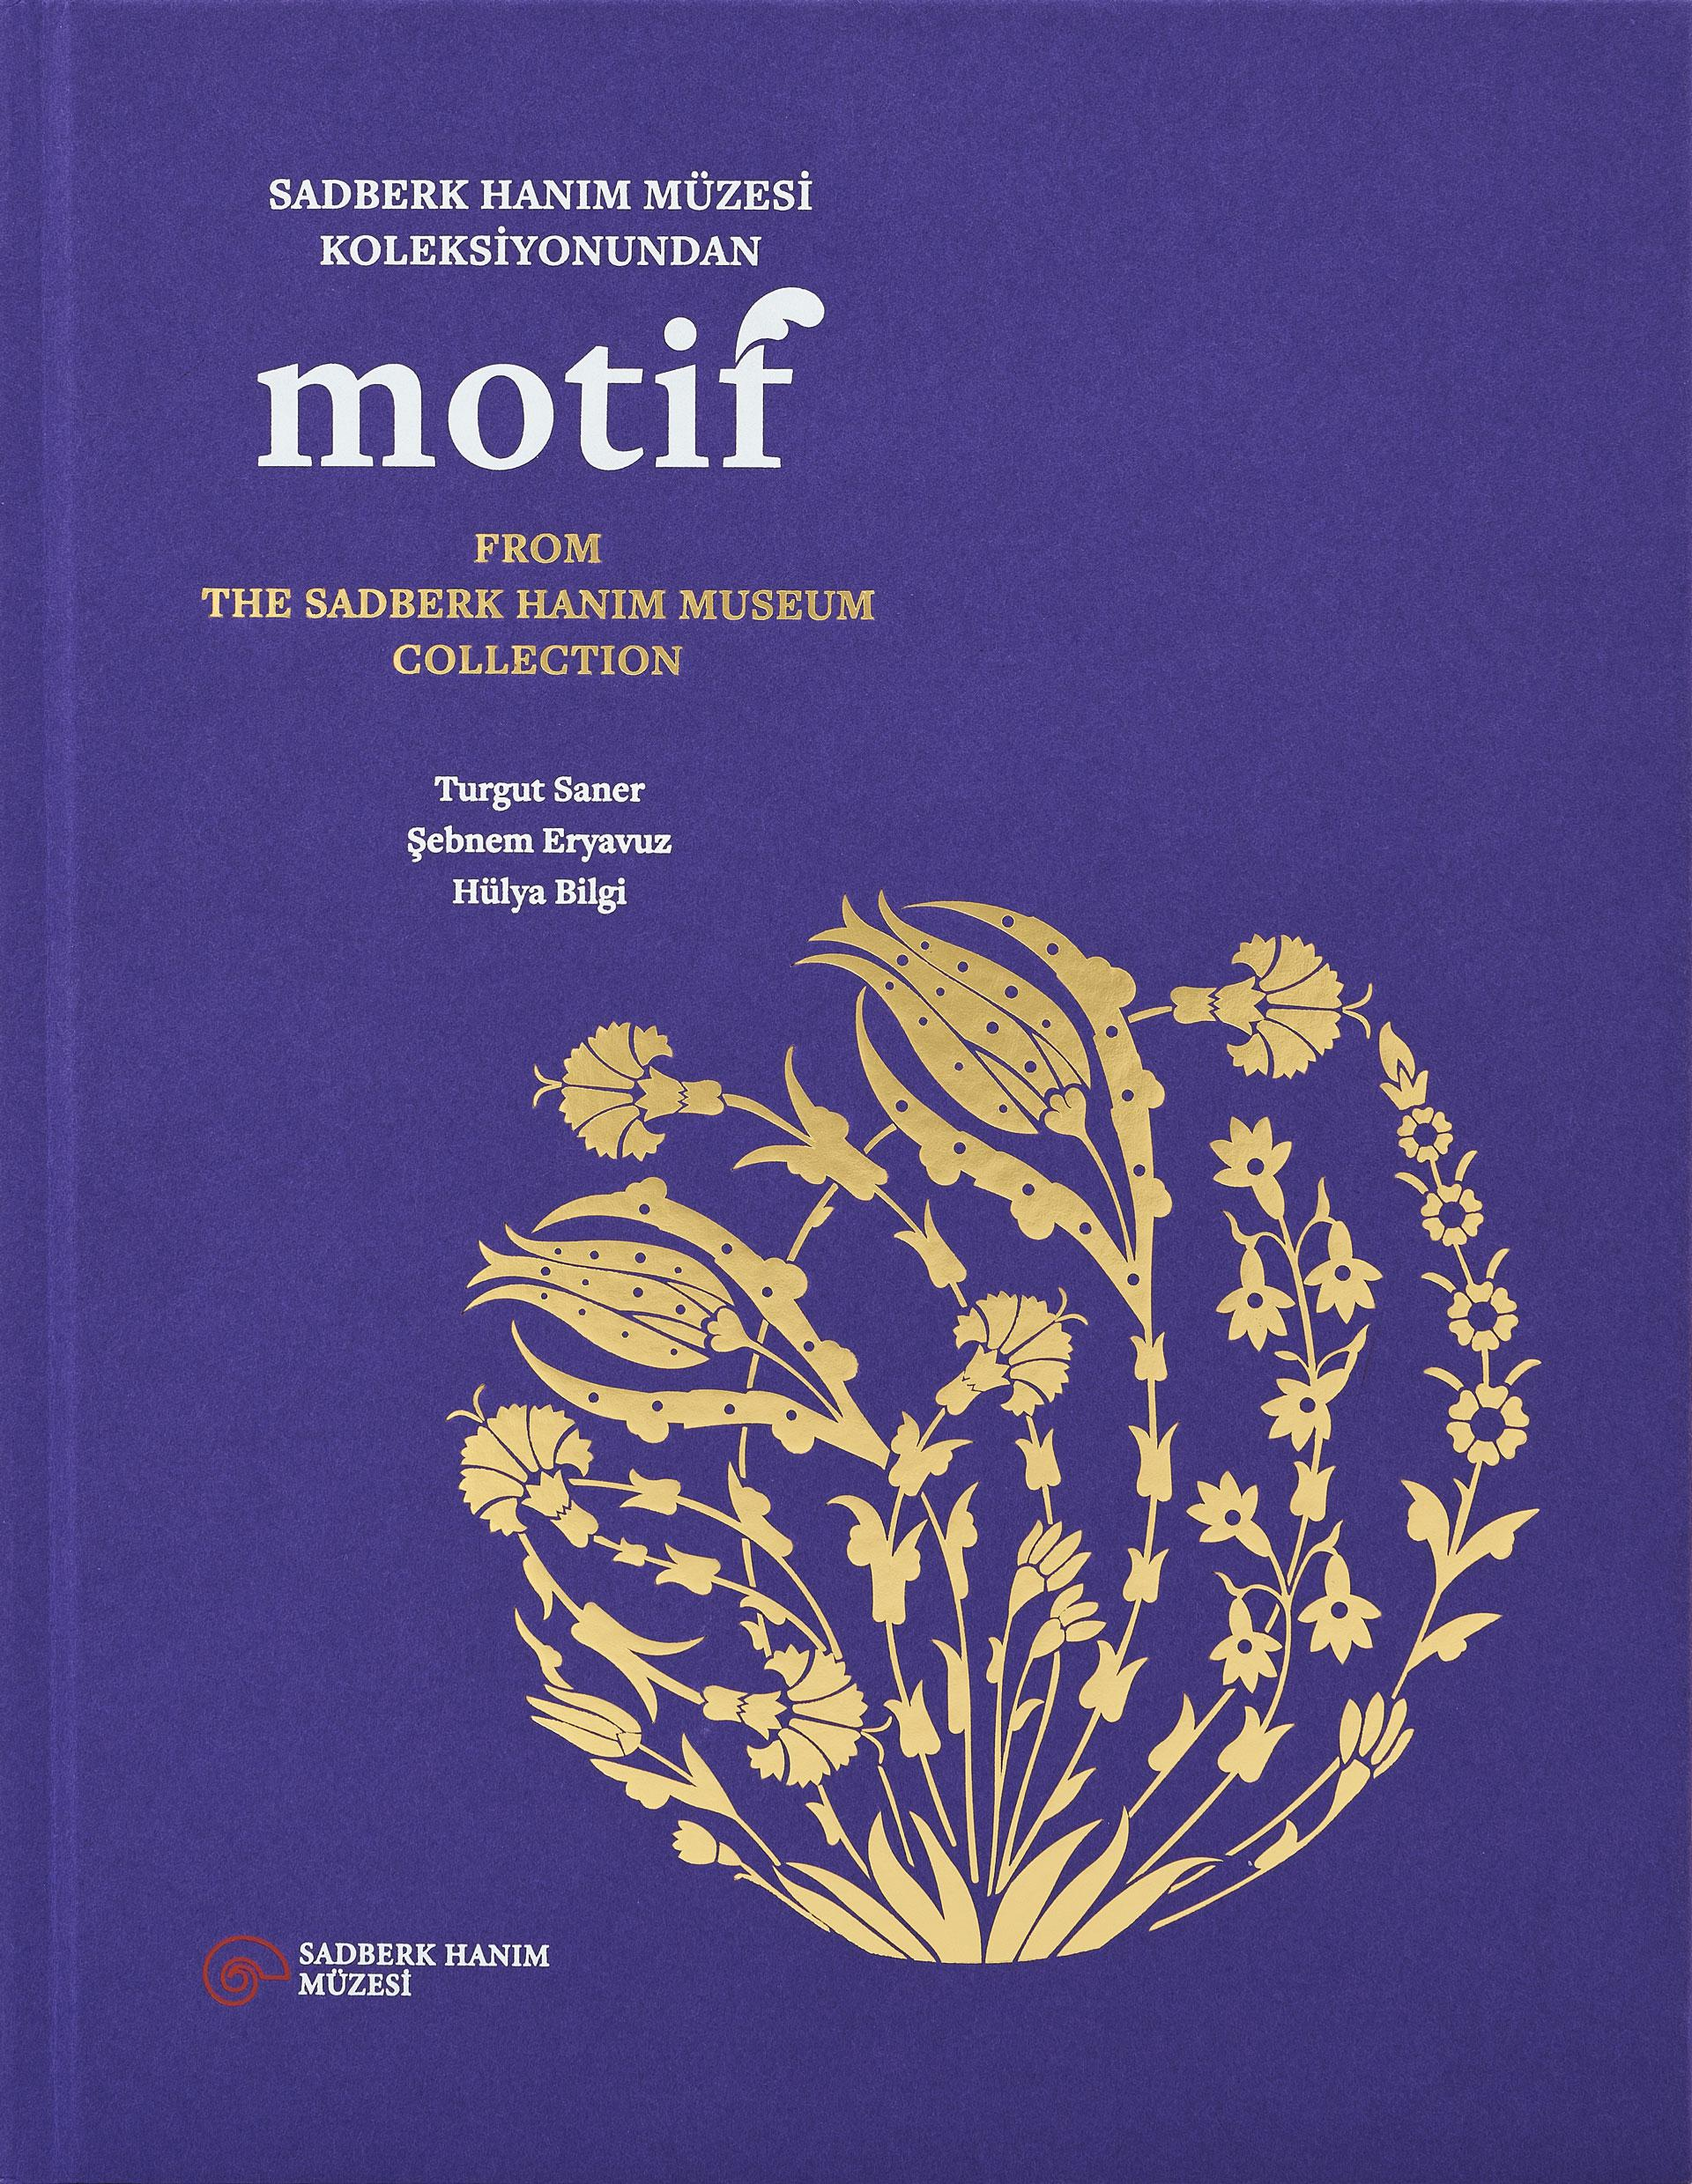 MOTIF, from the Sadberk Hanım Museum Collection - BOOKS - Sadberk Hanım Museum